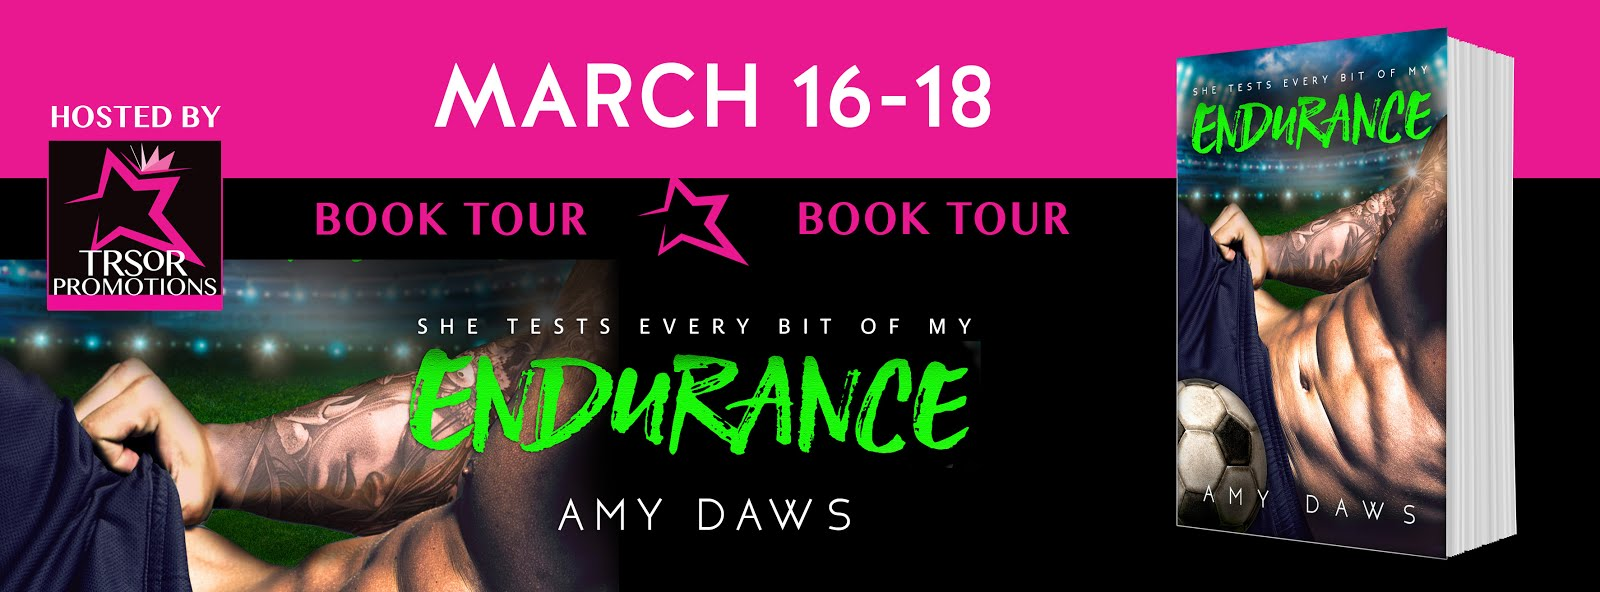 Endurance Blog Tour